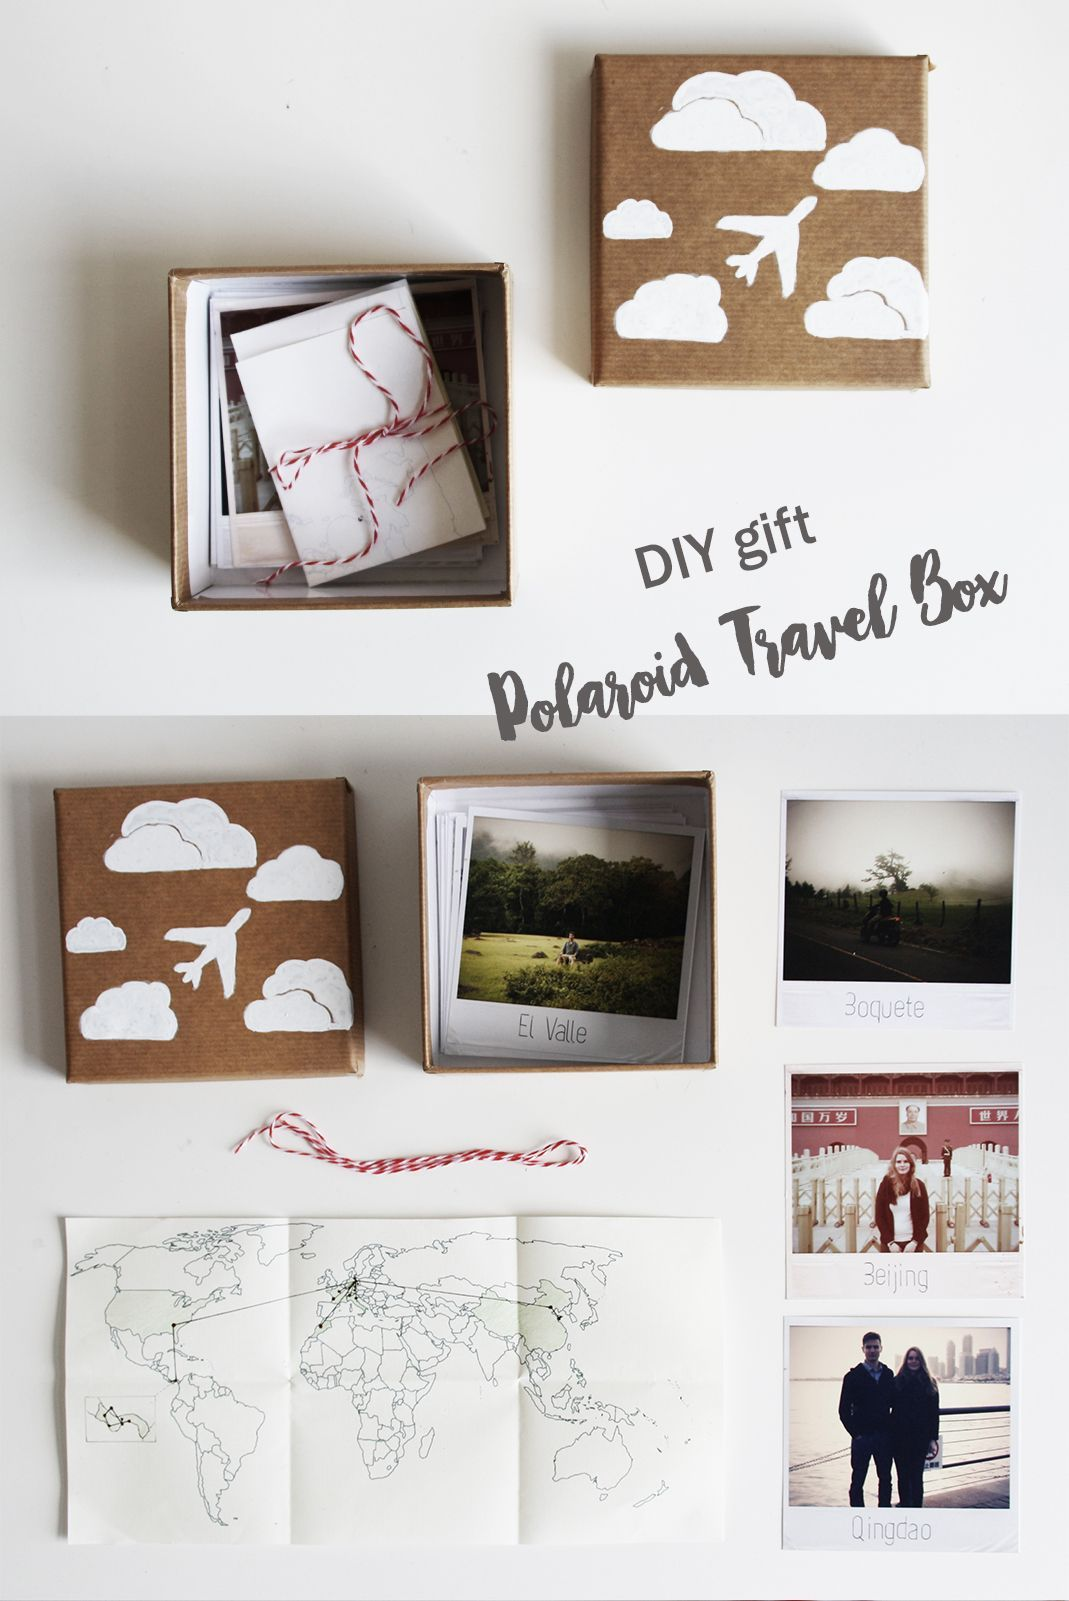 Diy Geschenk Polaroid Reise Kiste Do It Yourself Gift Idea